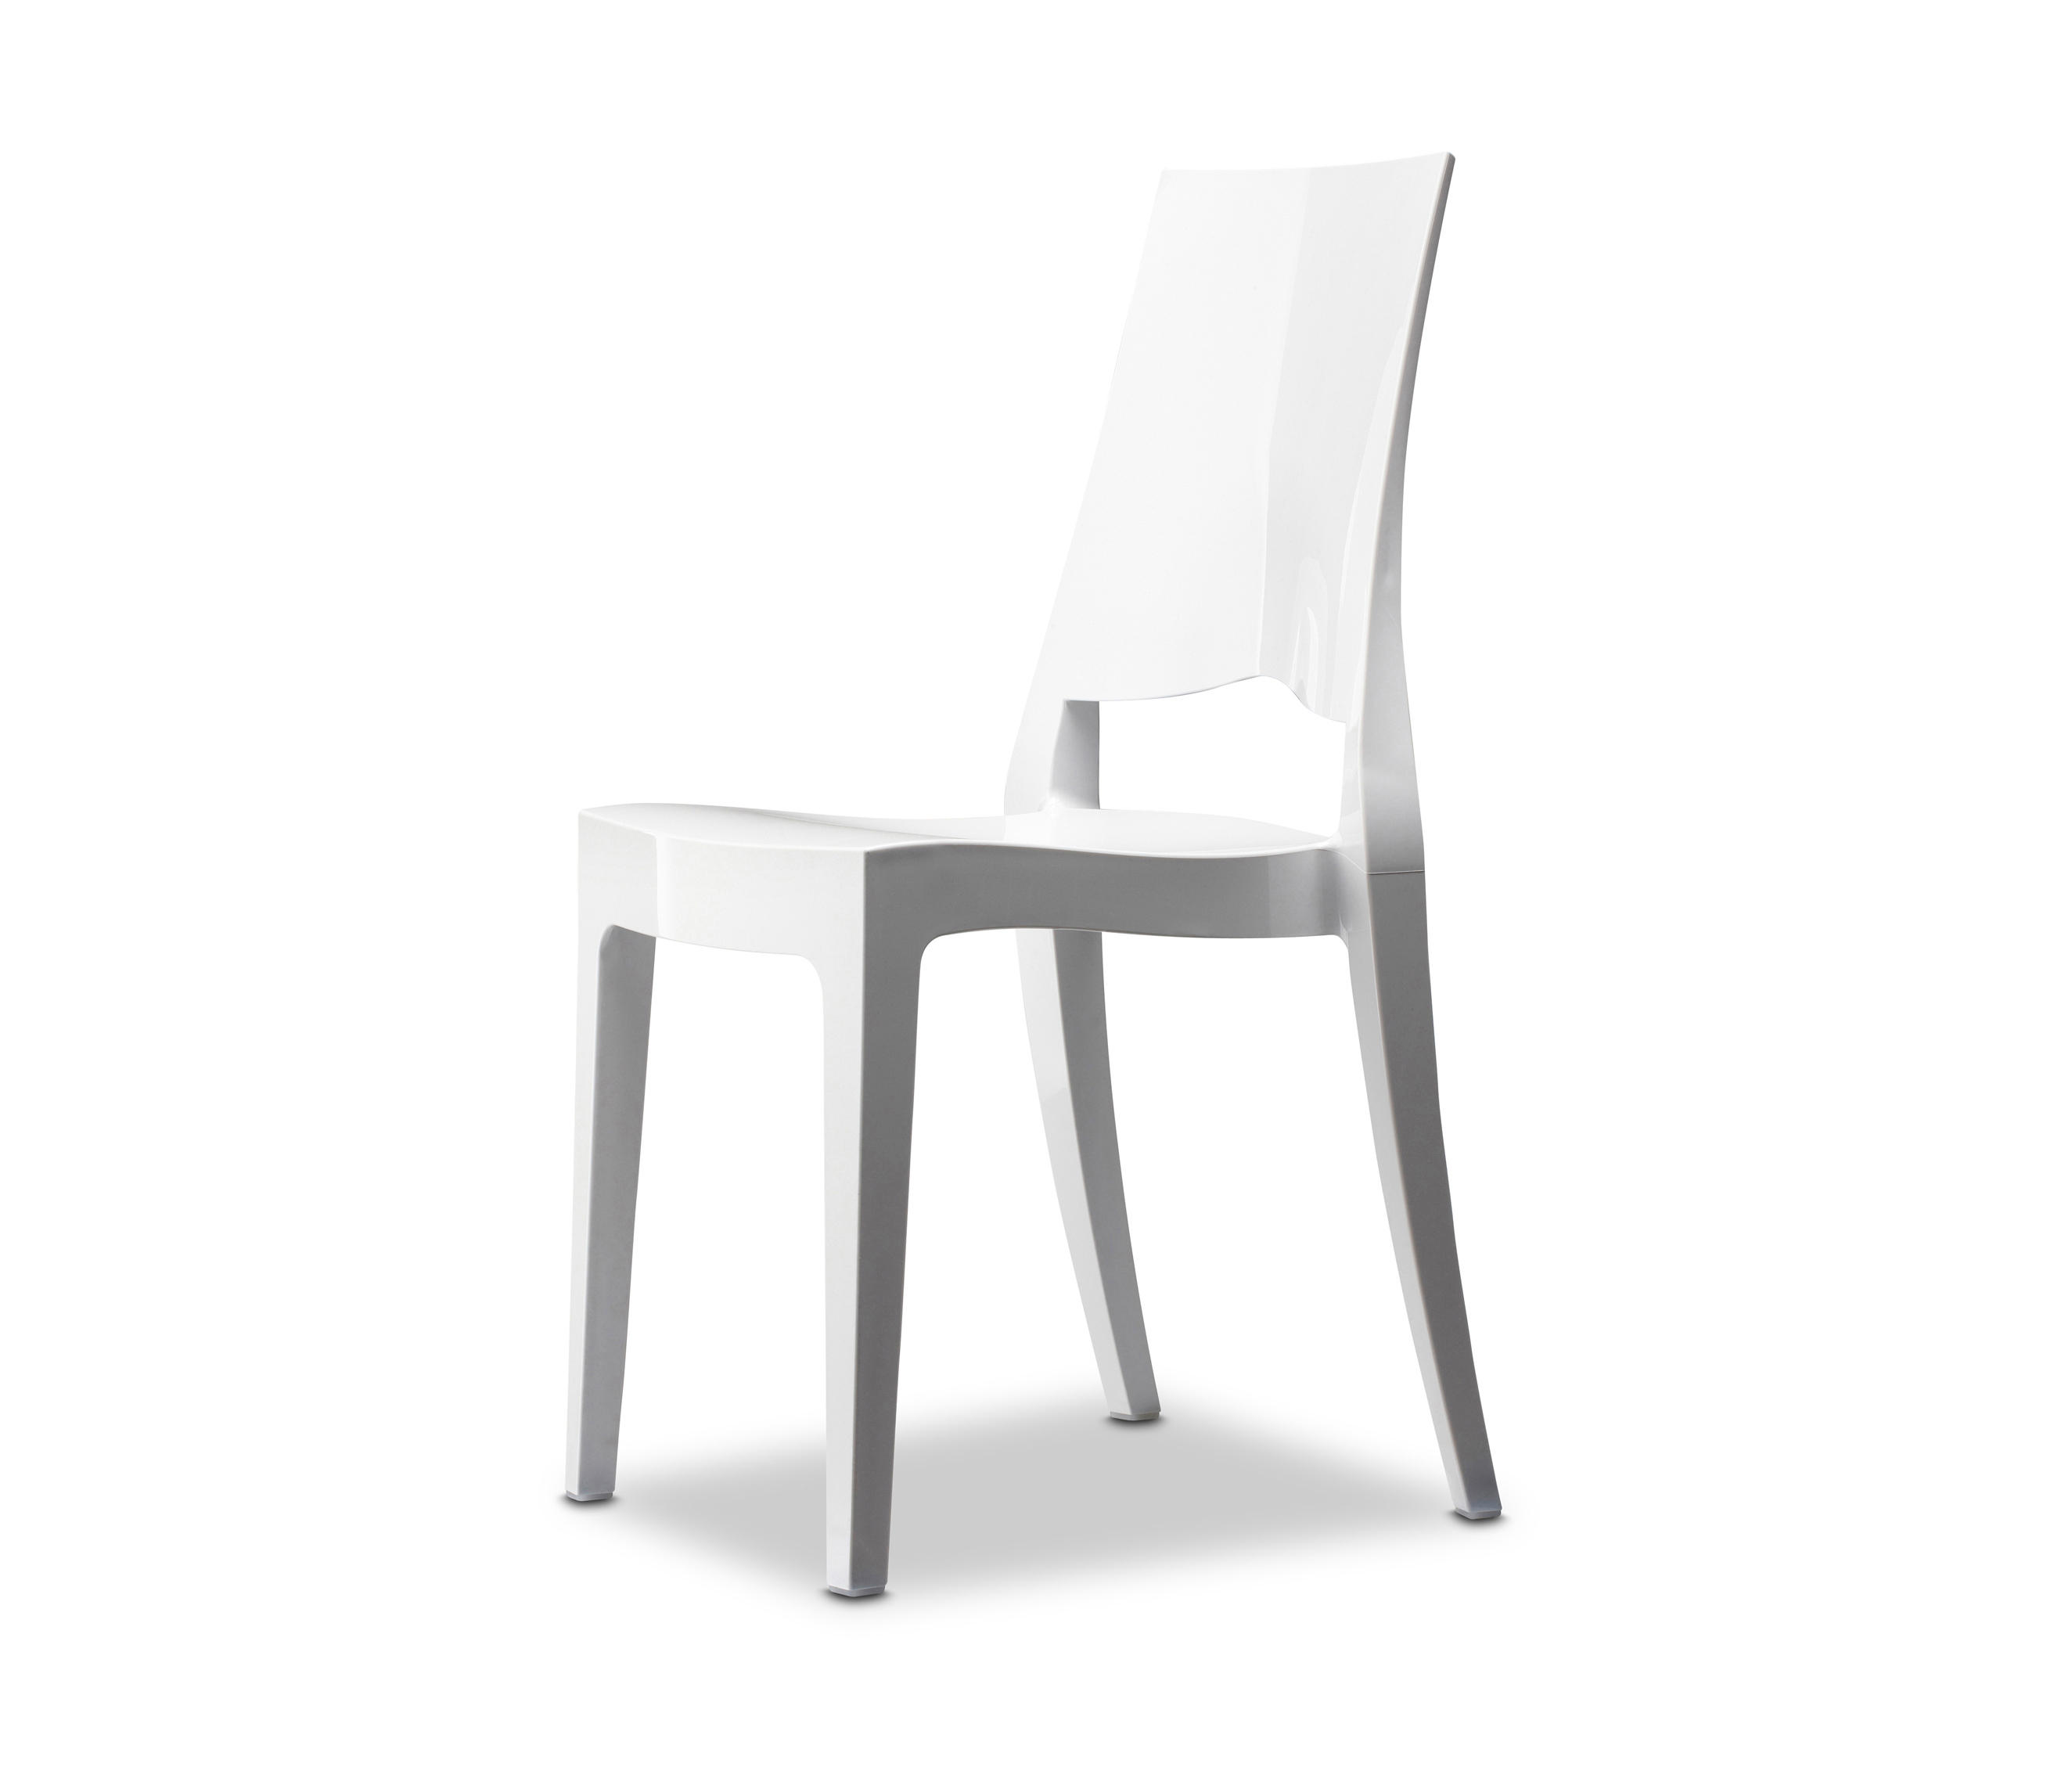 GLENDA Restaurant chairs from Scab Design